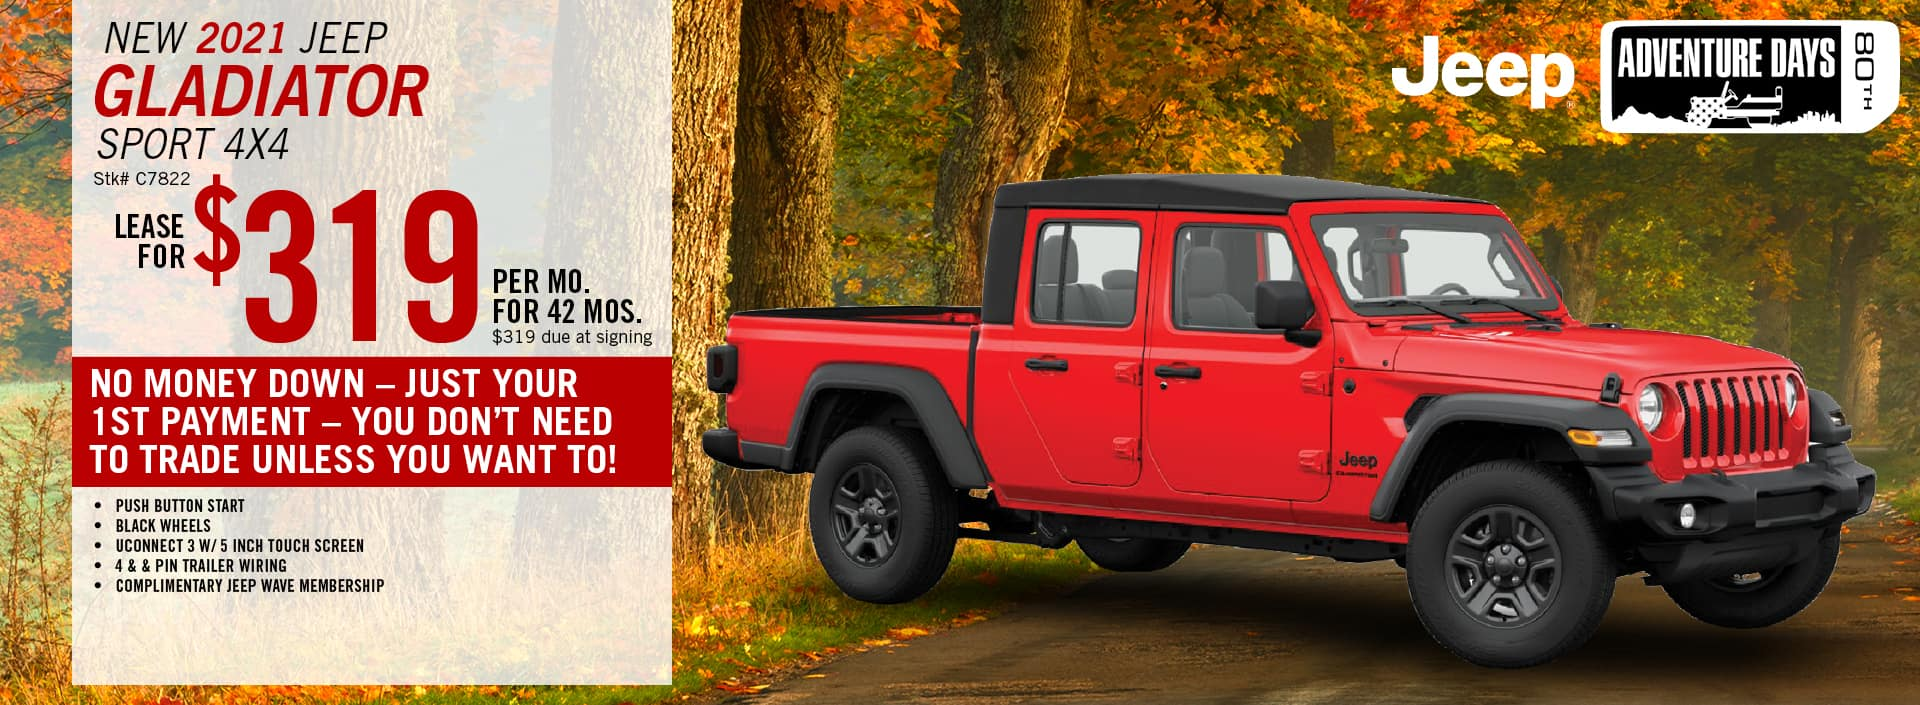 2020 Jeep Gladiator Lease Offer | Barre, VT